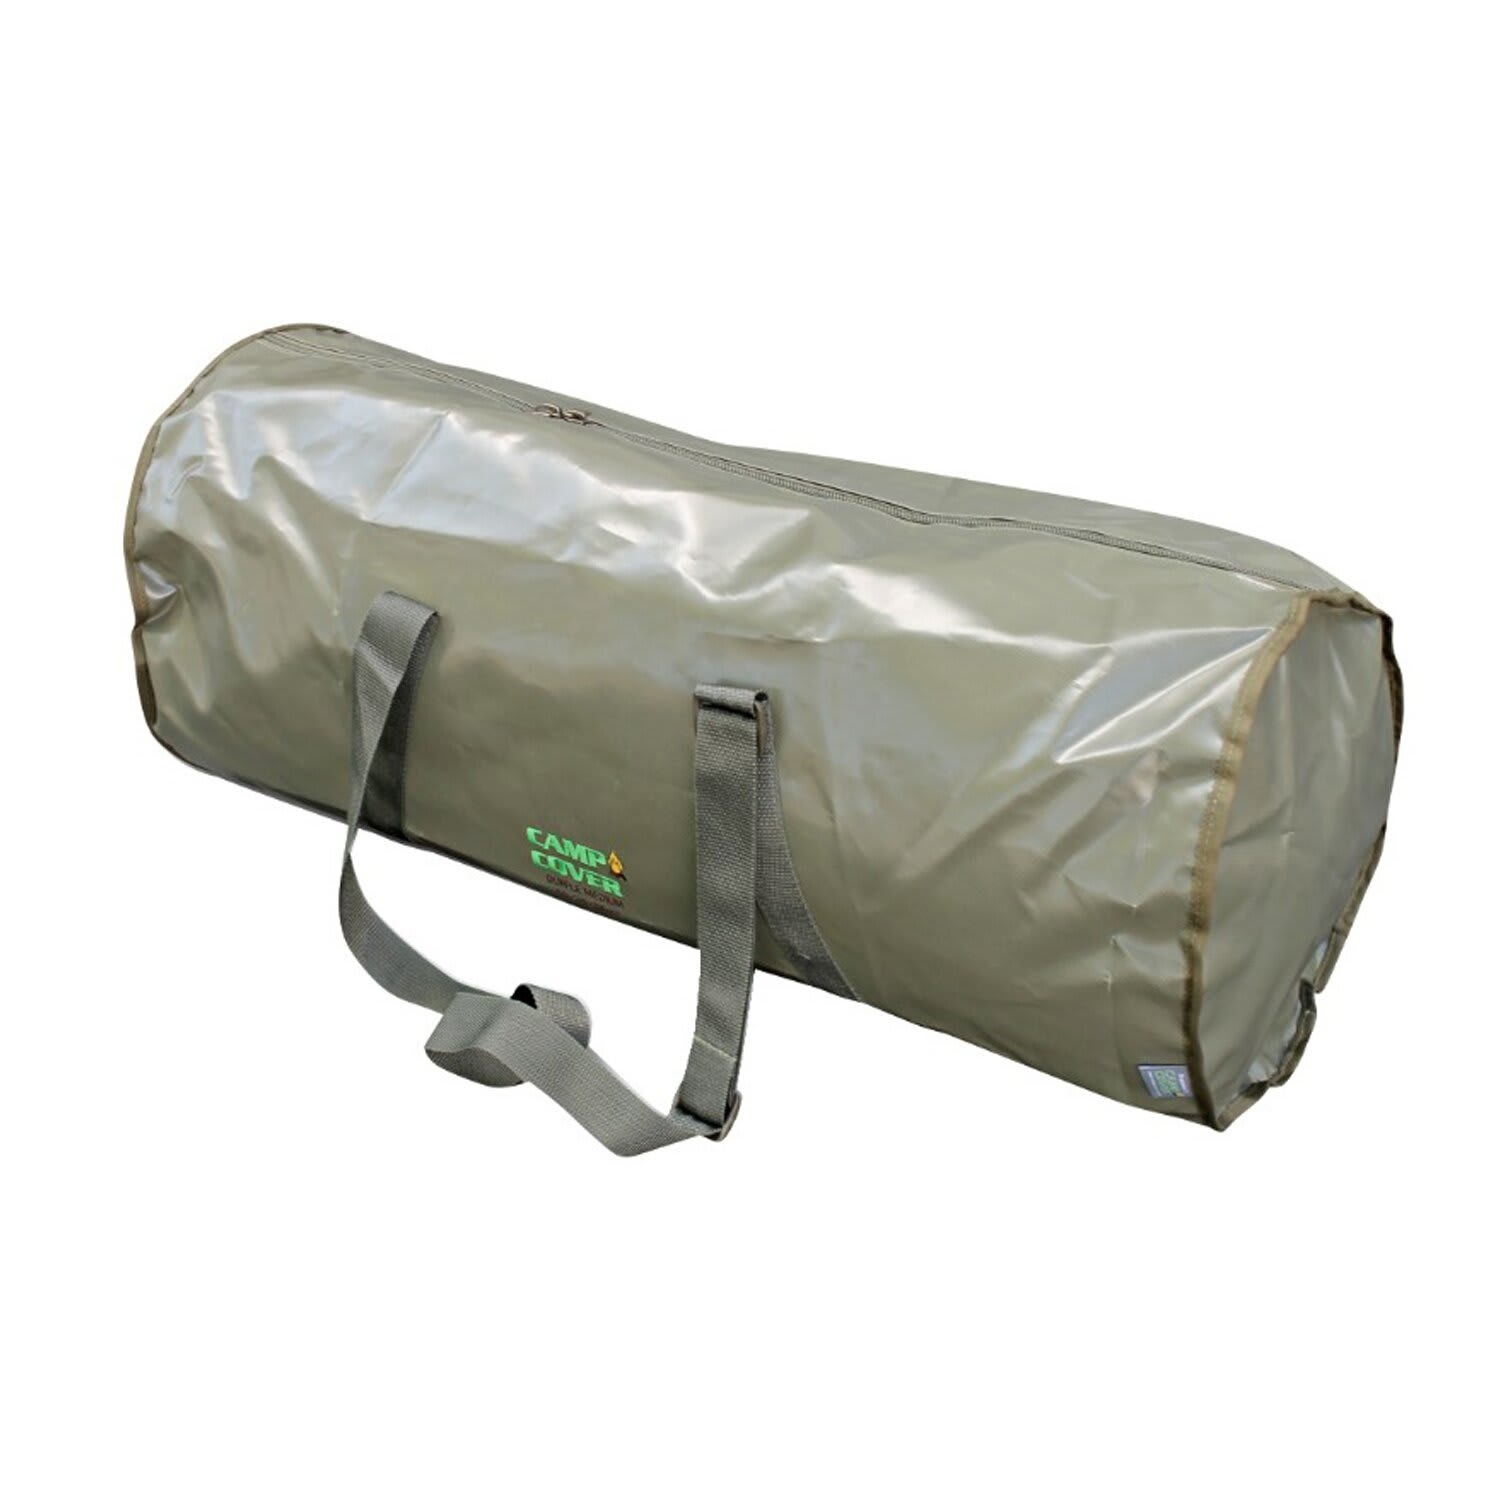 Camp Cover Medium Duffle Bag